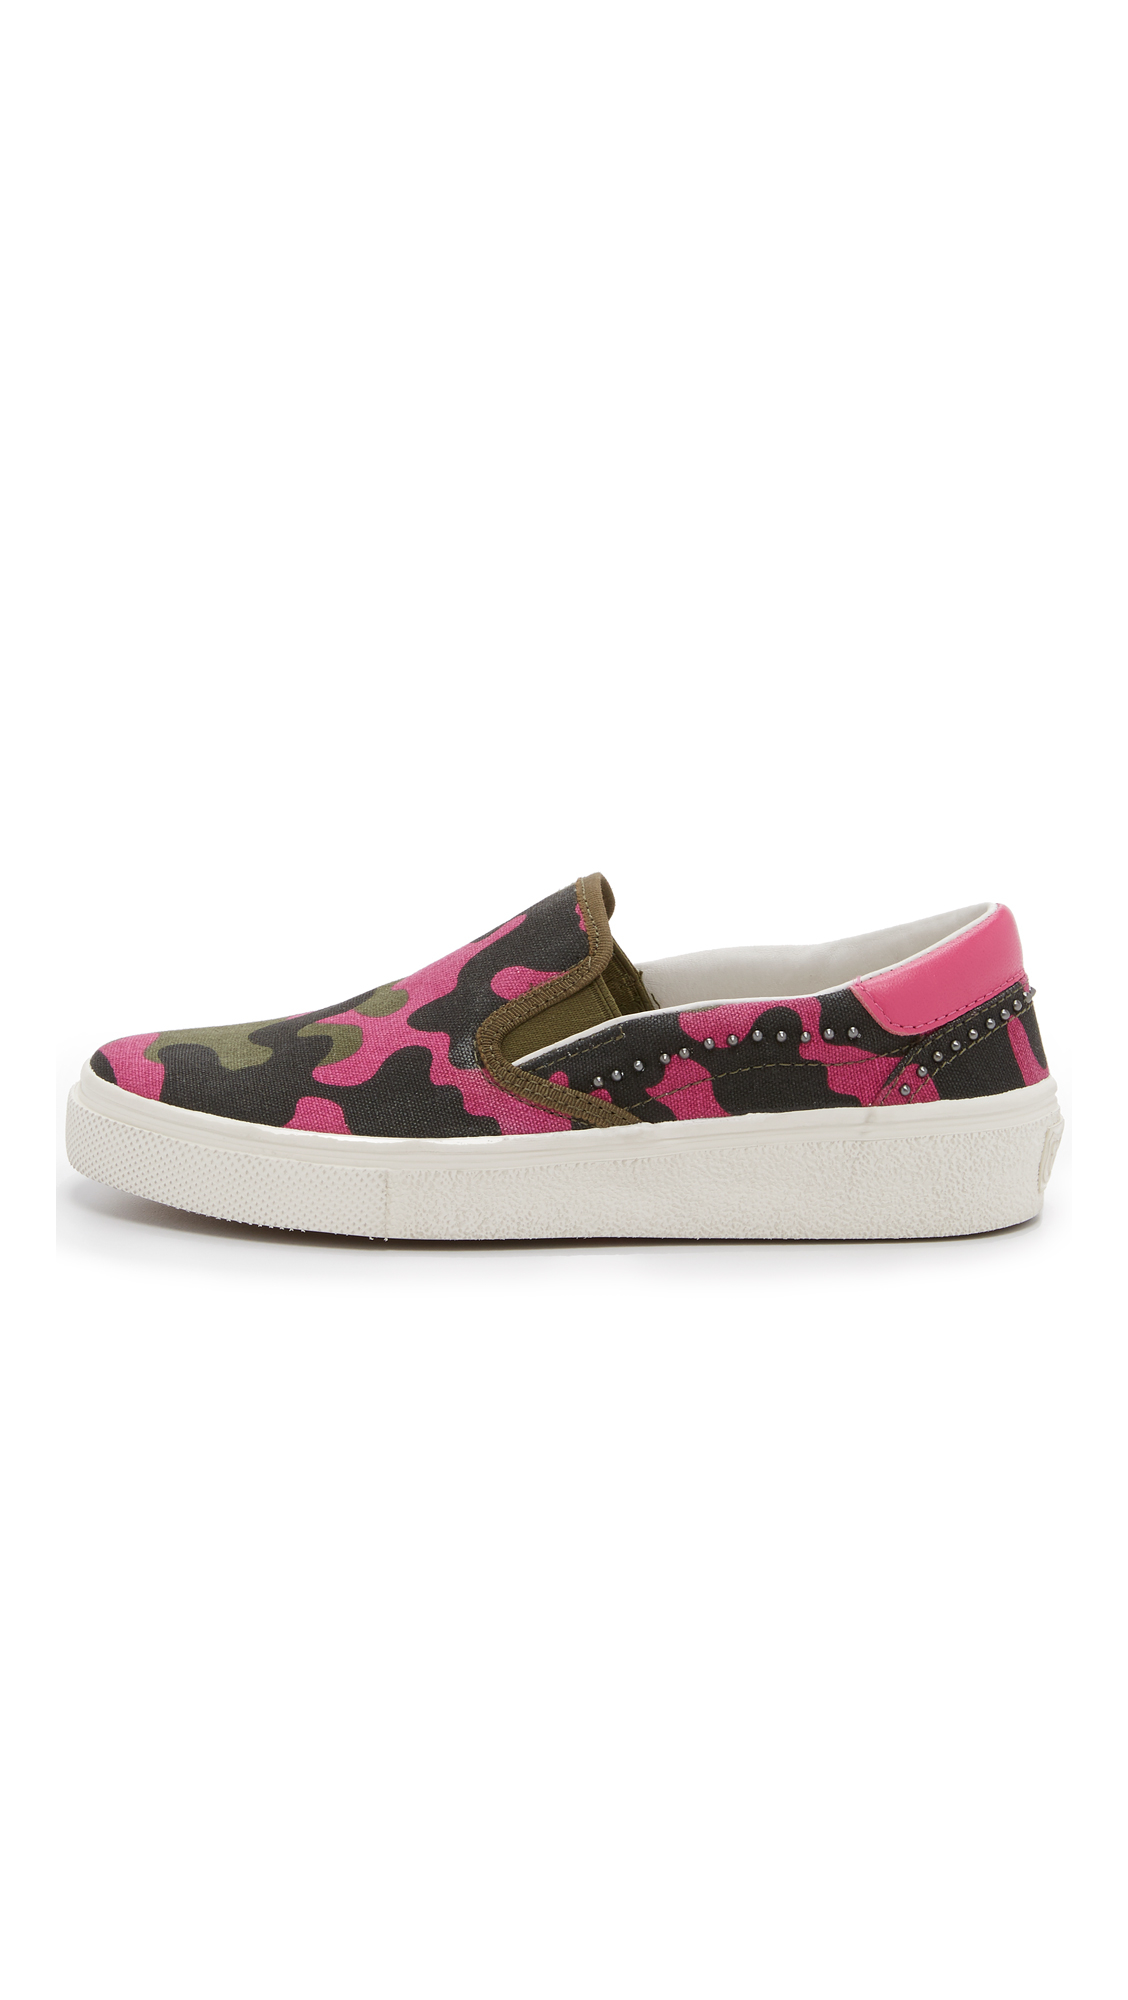 ash slip on sneakers in lyst